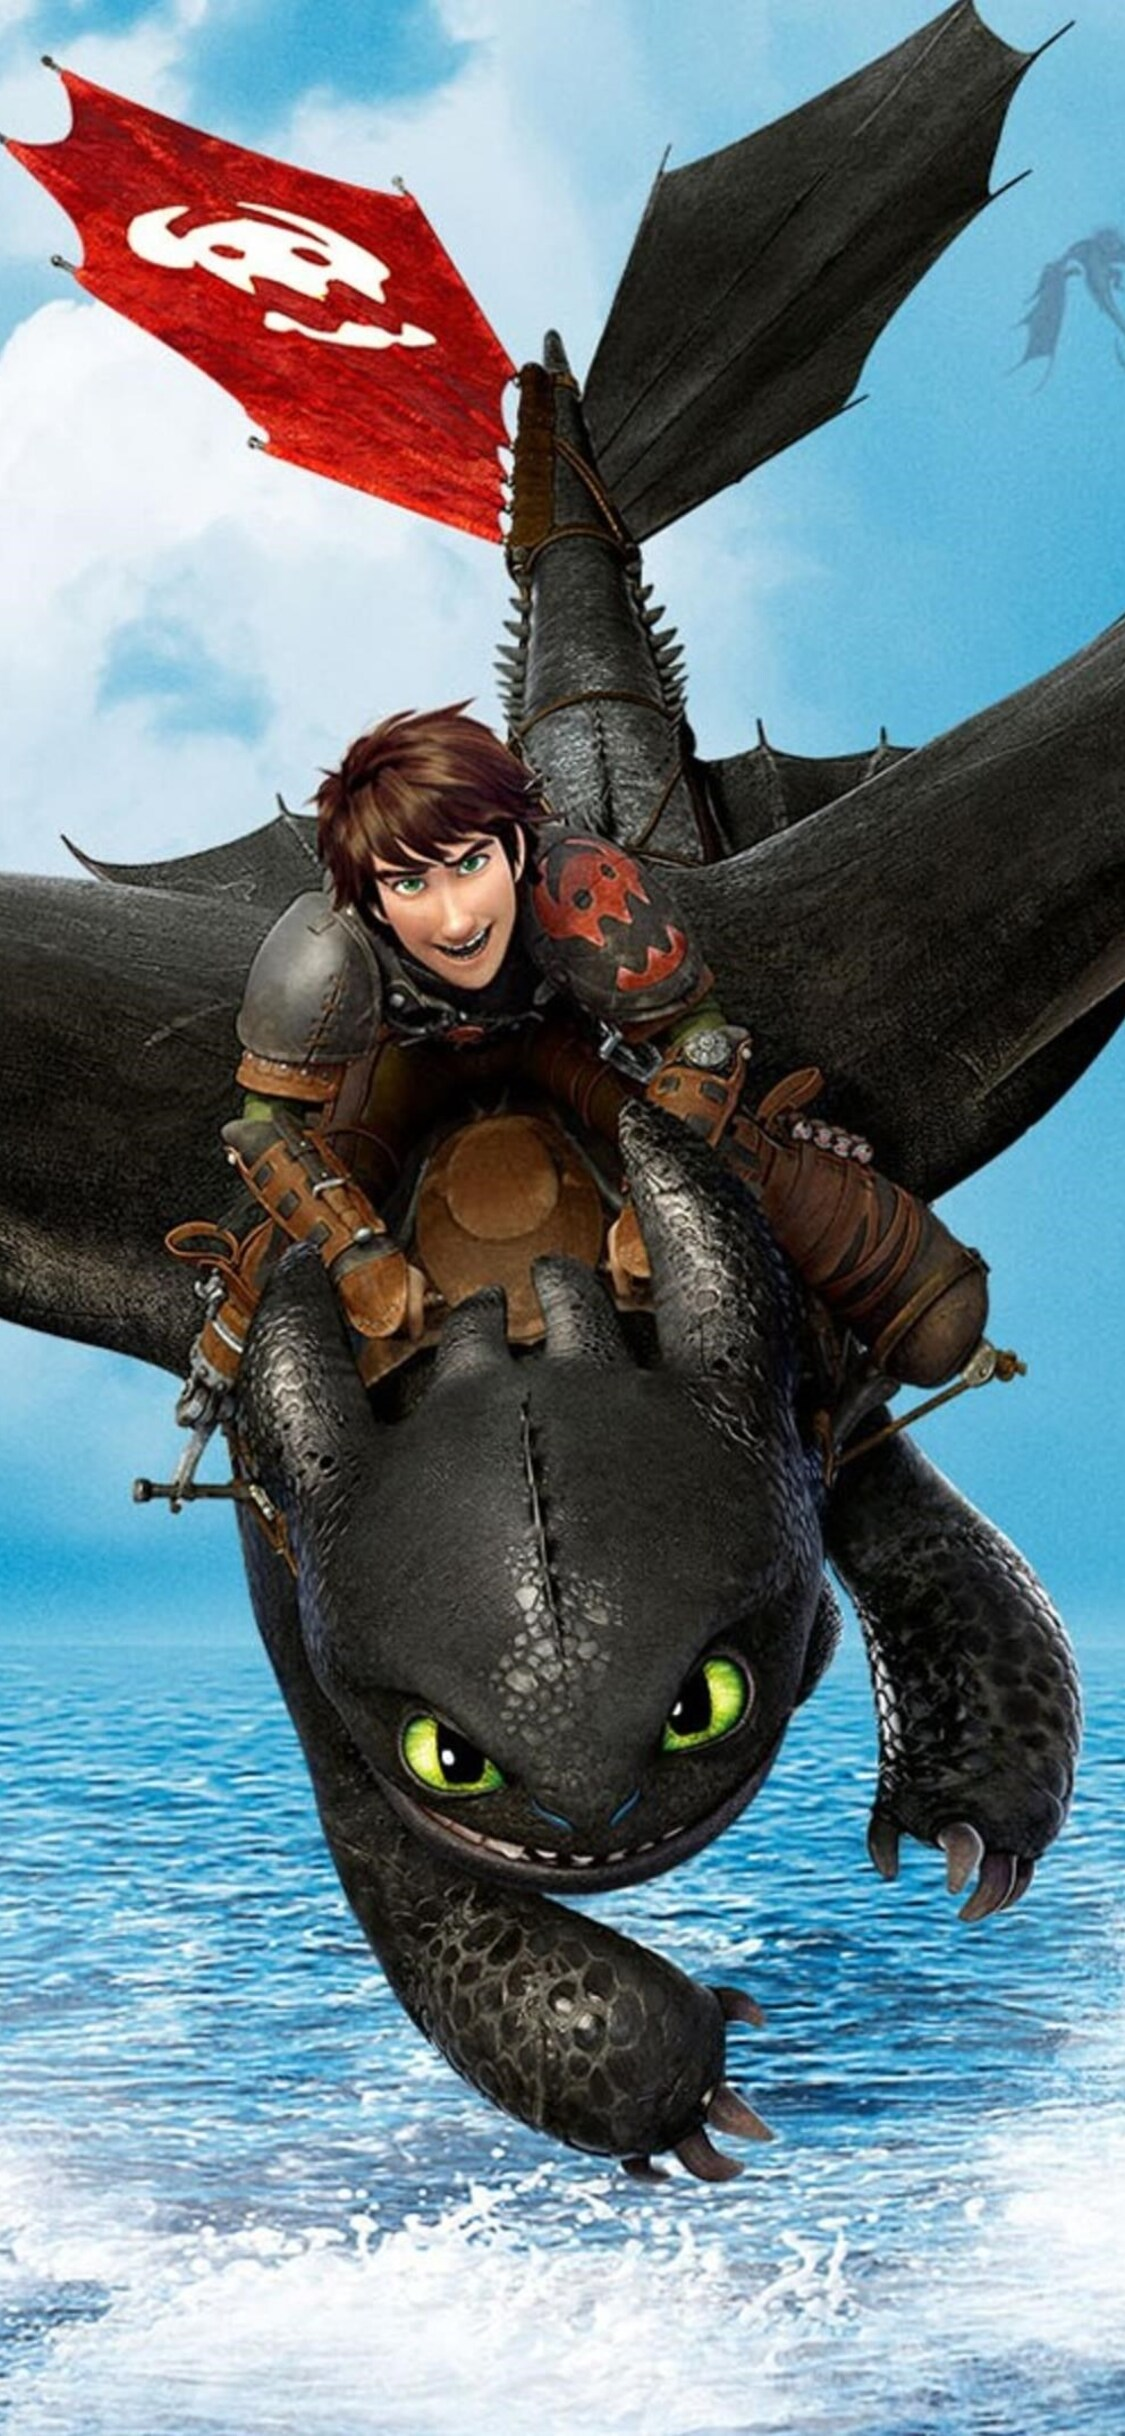 1125x2436 how to train your dragon 2 wide iphone xs iphone - How to train your dragon hd download ...